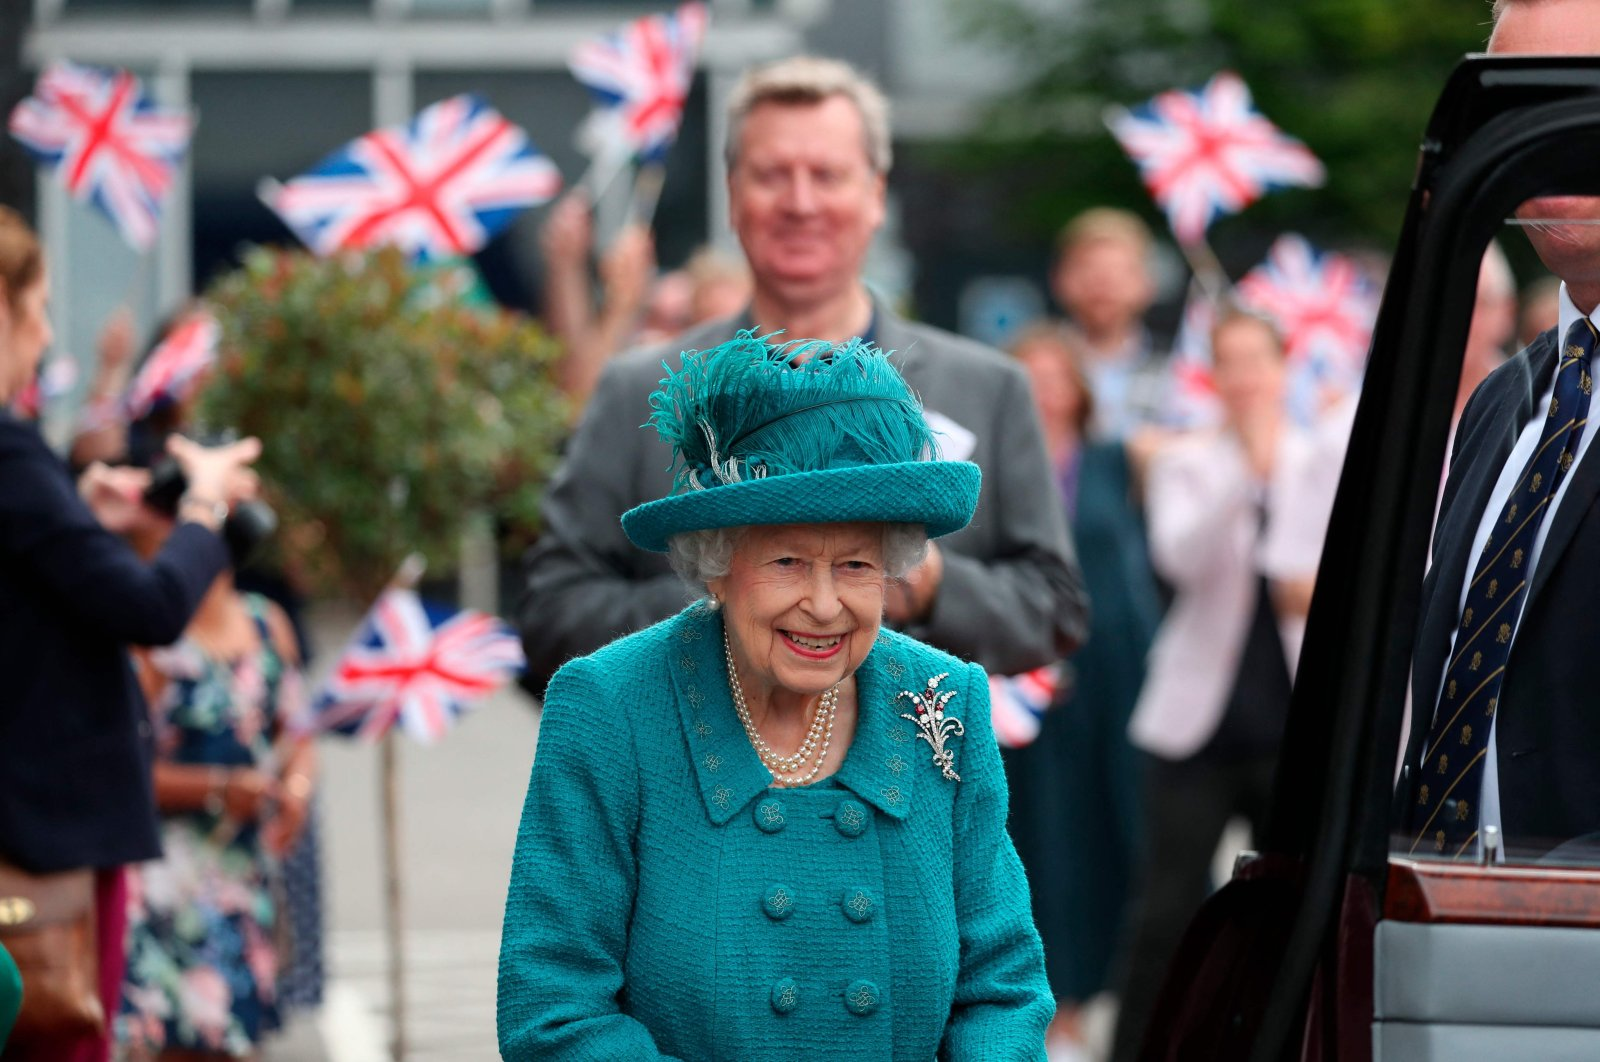 """Britain's Queen Elizabeth II visits the set of the long-running television series """"Coronation Street"""" in Manchester, northwest England, July 8, 2021. (AFP Photo)"""